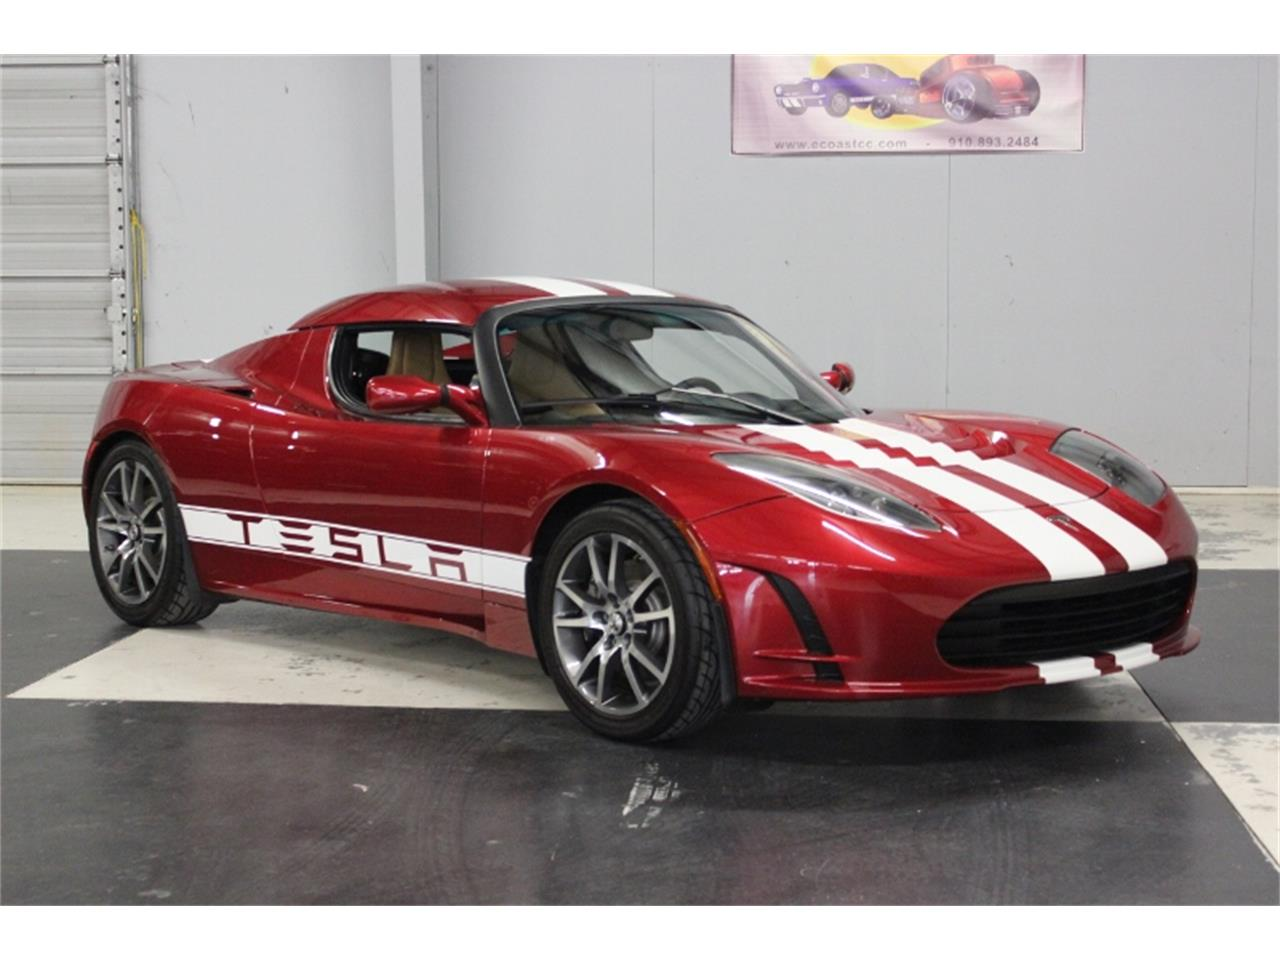 Large Picture of 2011 Tesla Roadster located in Lillington North Carolina - $70,000.00 Offered by East Coast Classic Cars - PUDM